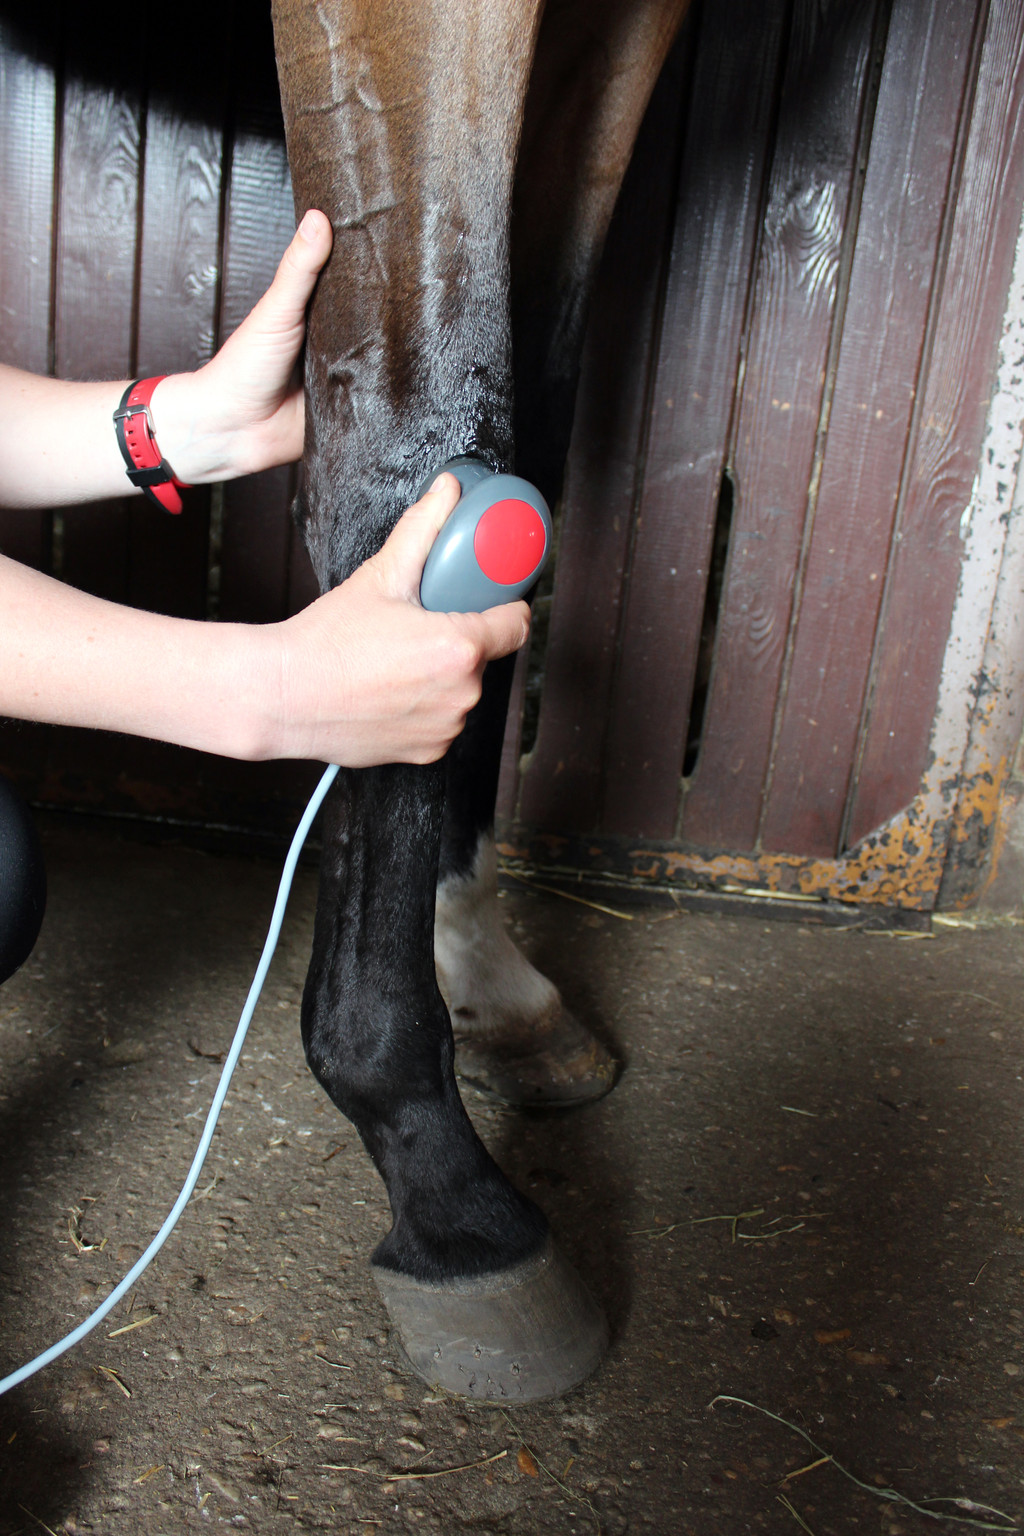 horse joint mobility limitations